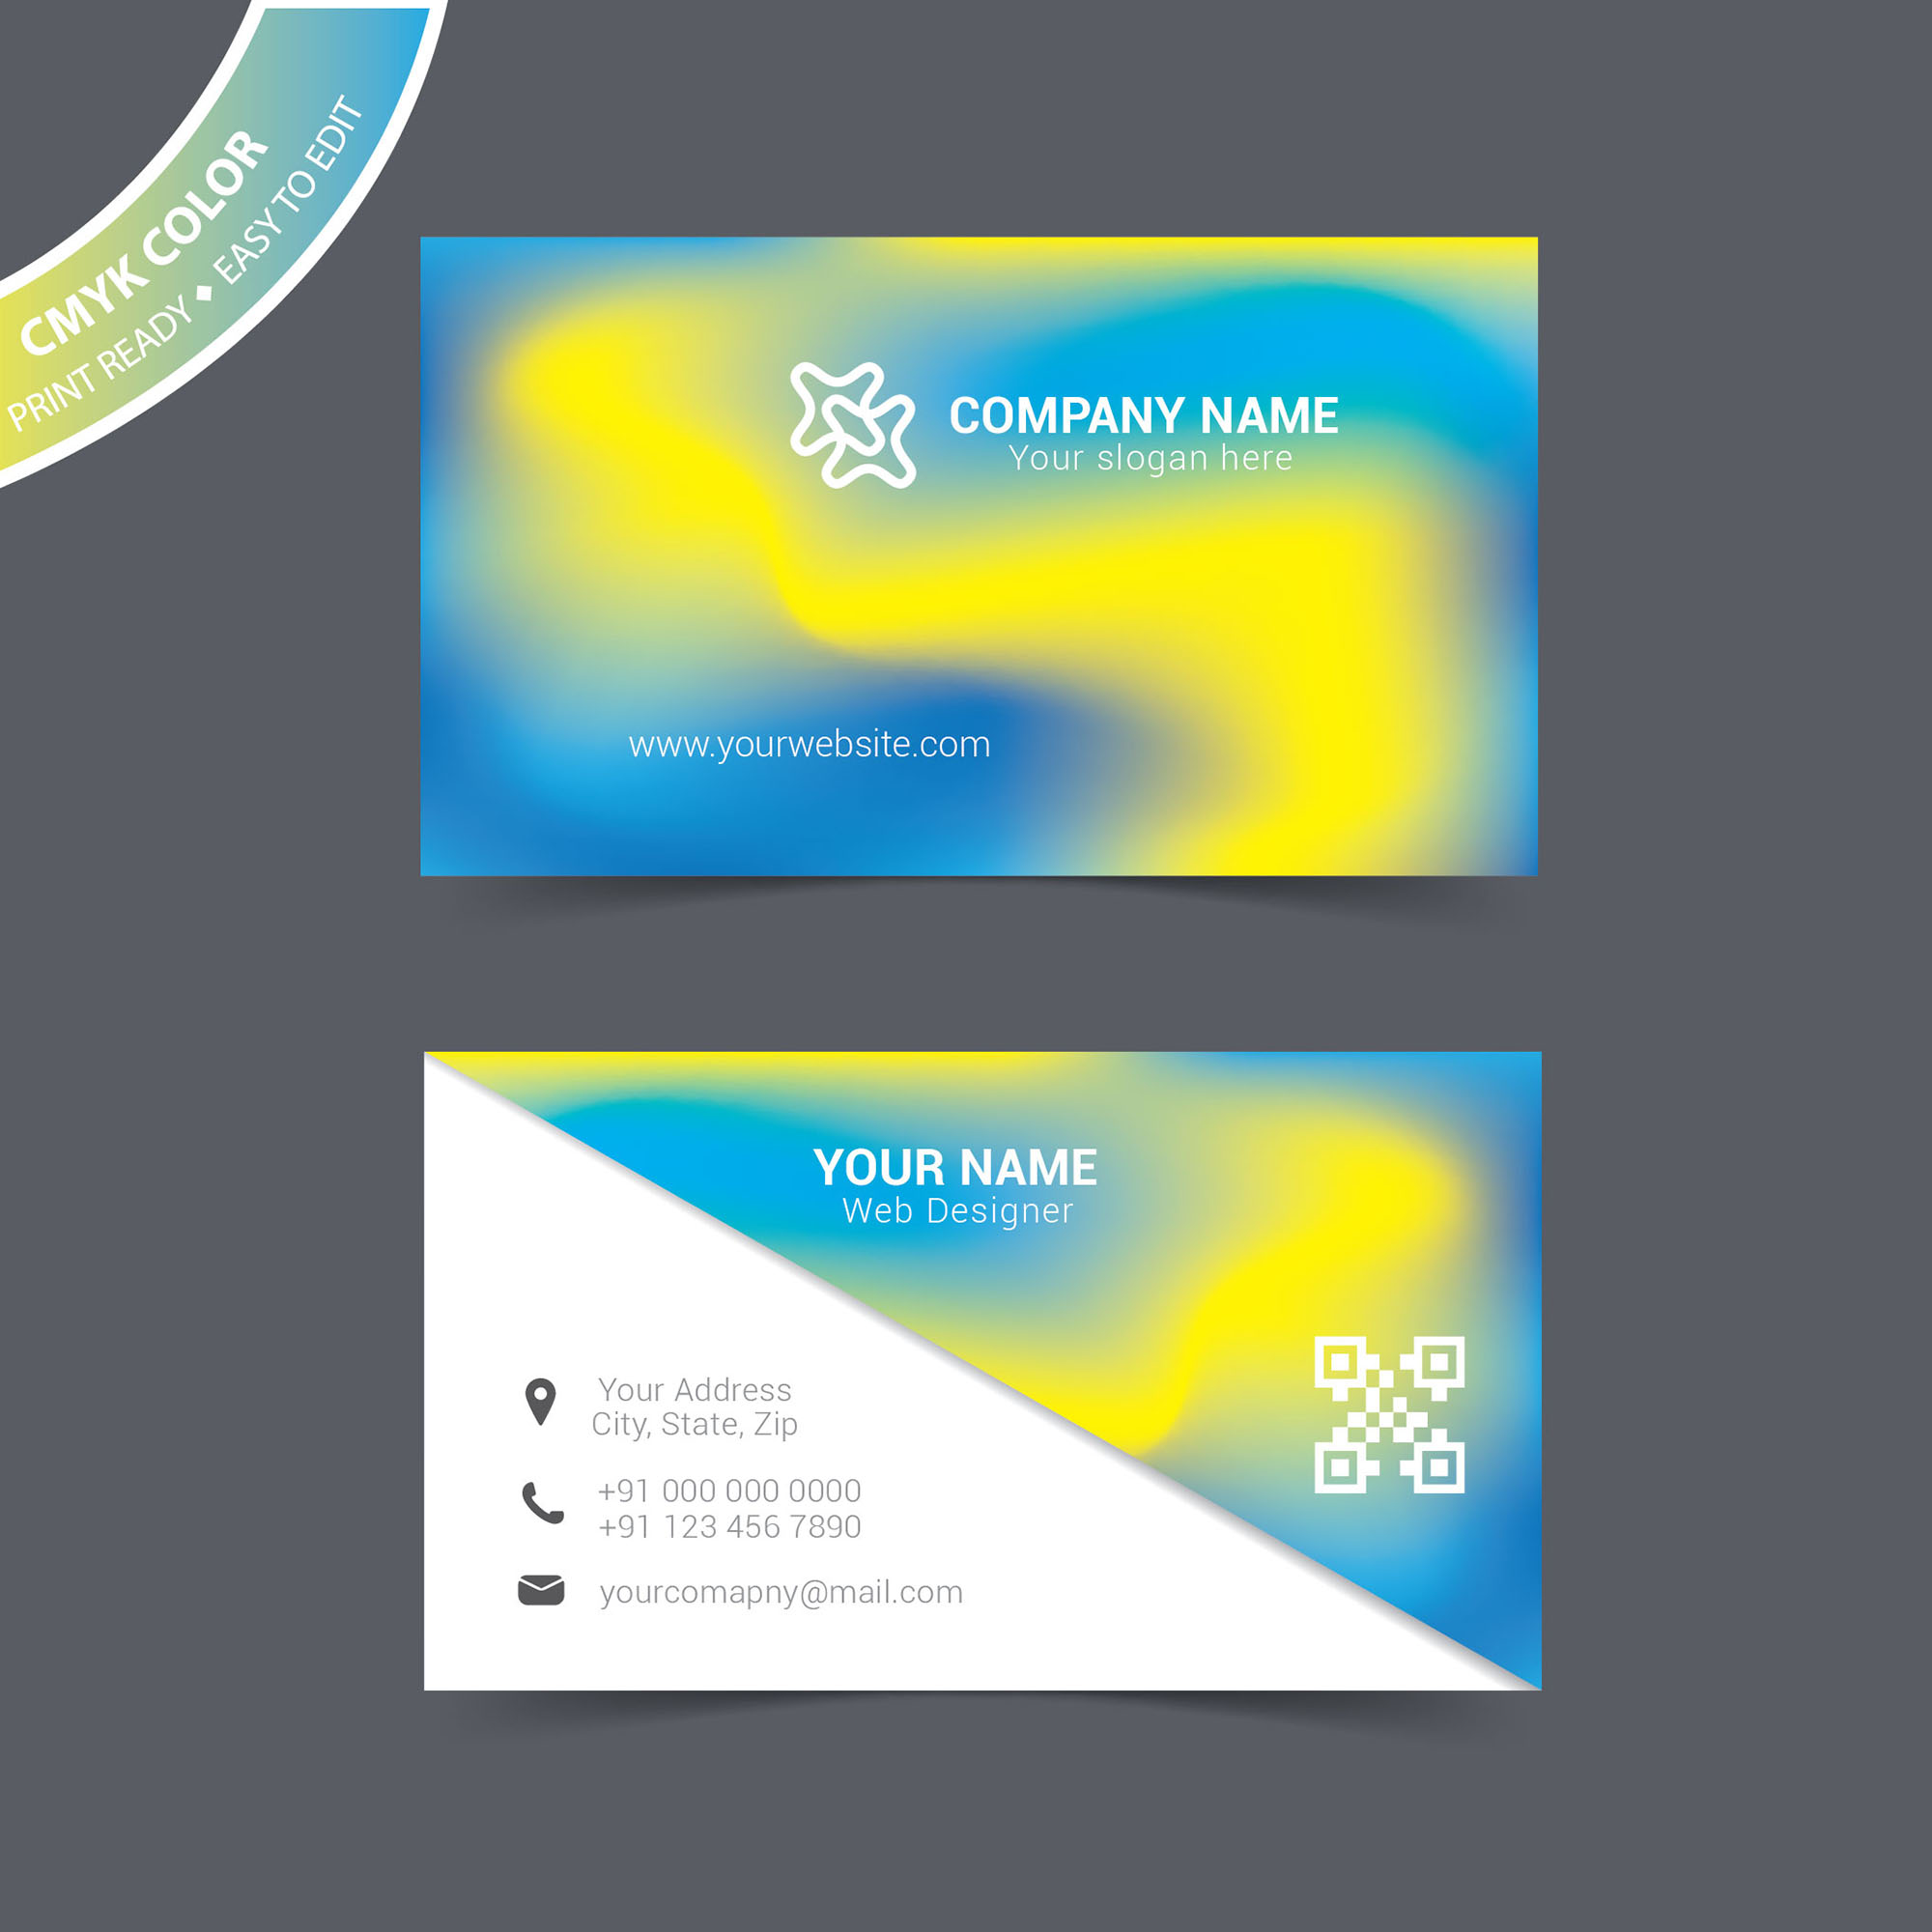 Vector abstract business card free download - Wisxi.com